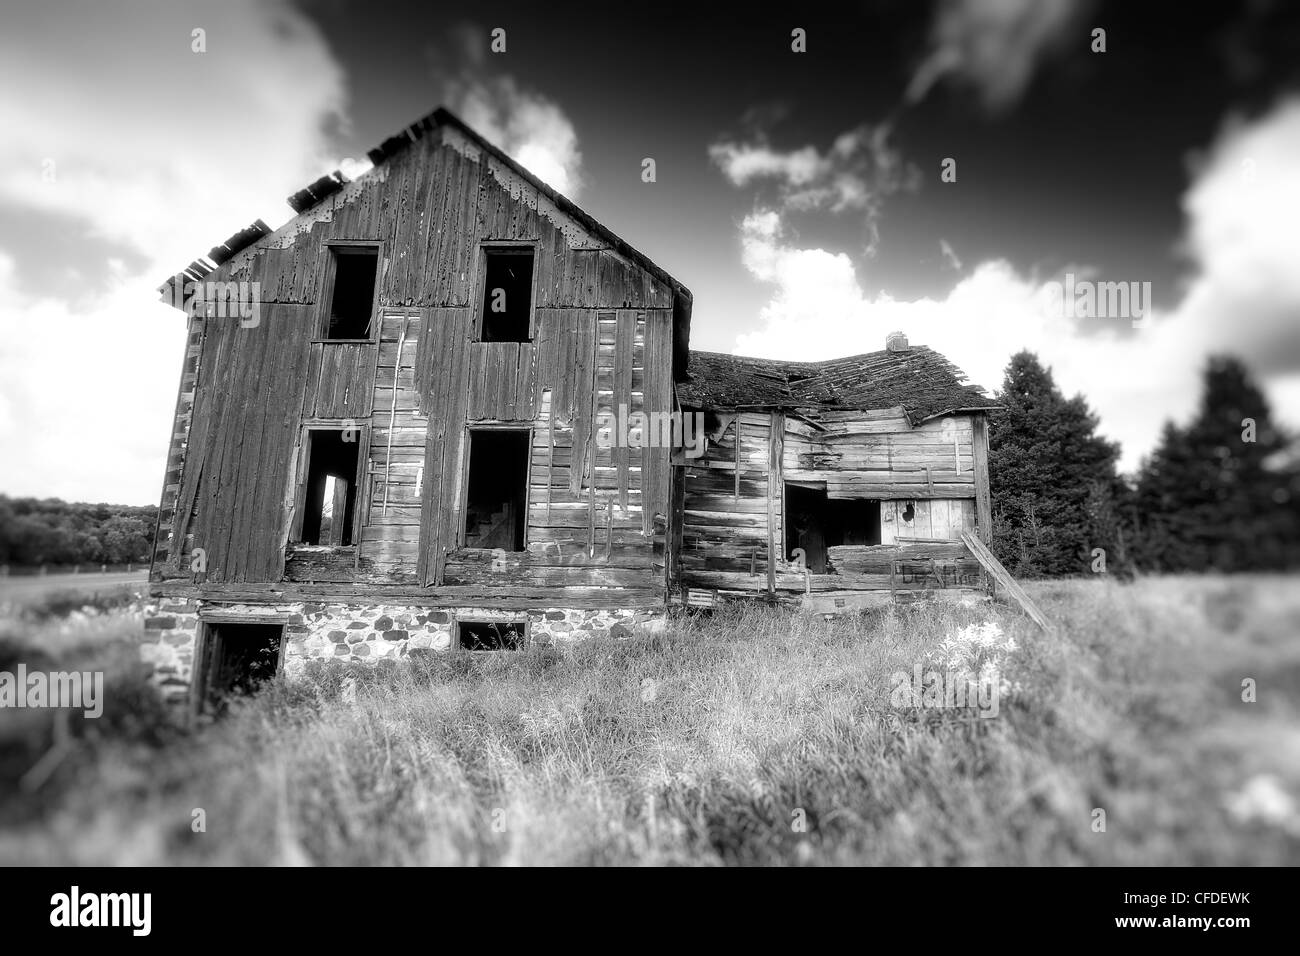 Black and white image of an old abandoned house in Ontario, Canada - Stock Image